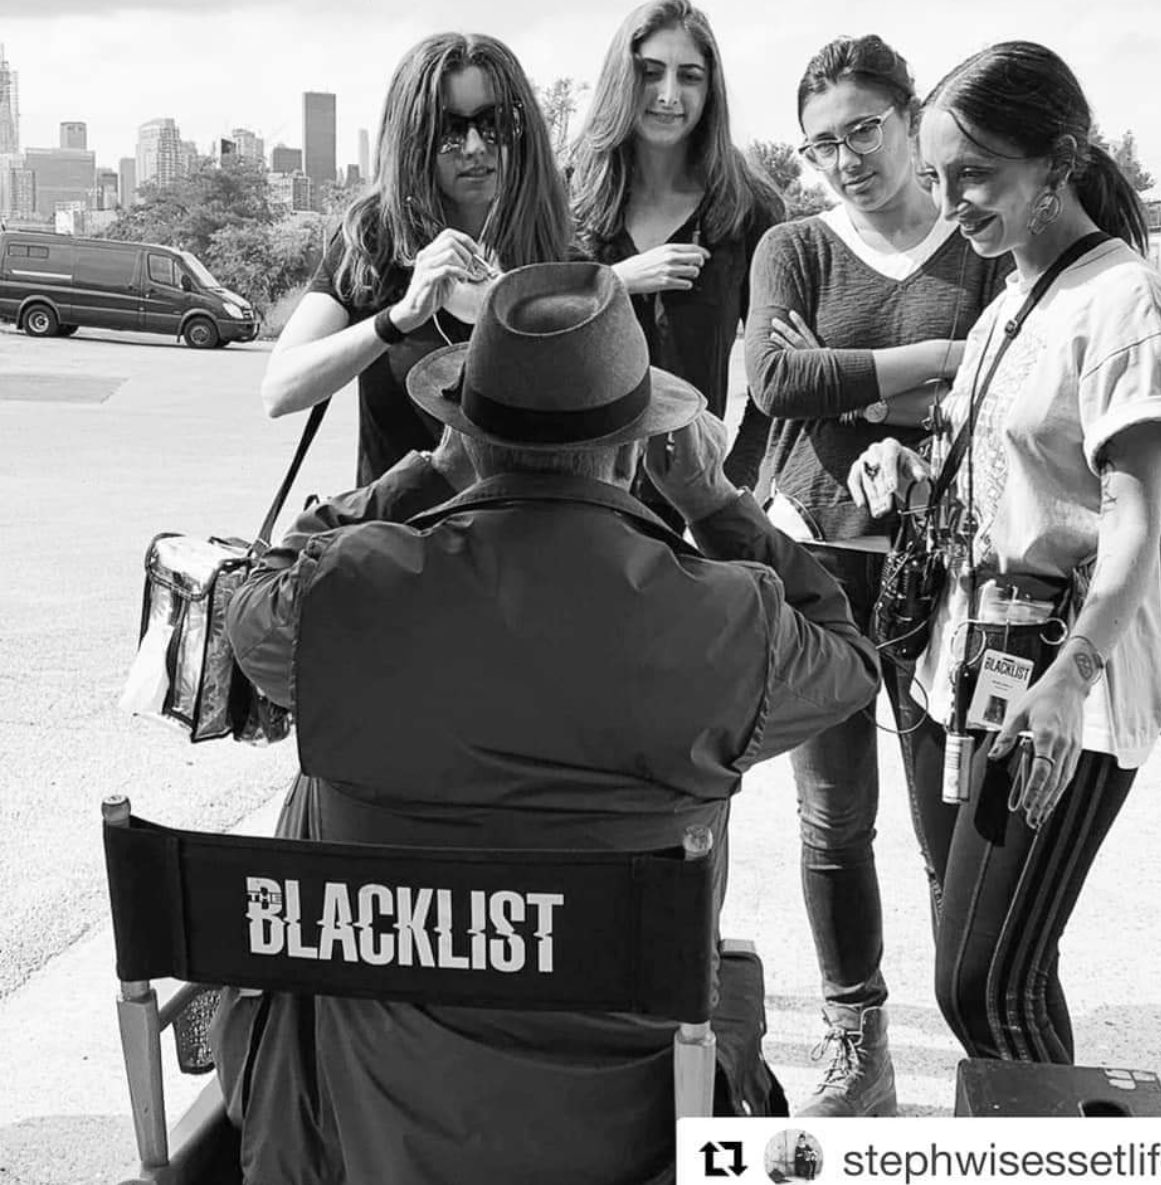 Just a wonderful picture from #stephwisessetlife Instagram.  #JamesSpader #TheBlacklist   <br>http://pic.twitter.com/O2Klfzlgh2